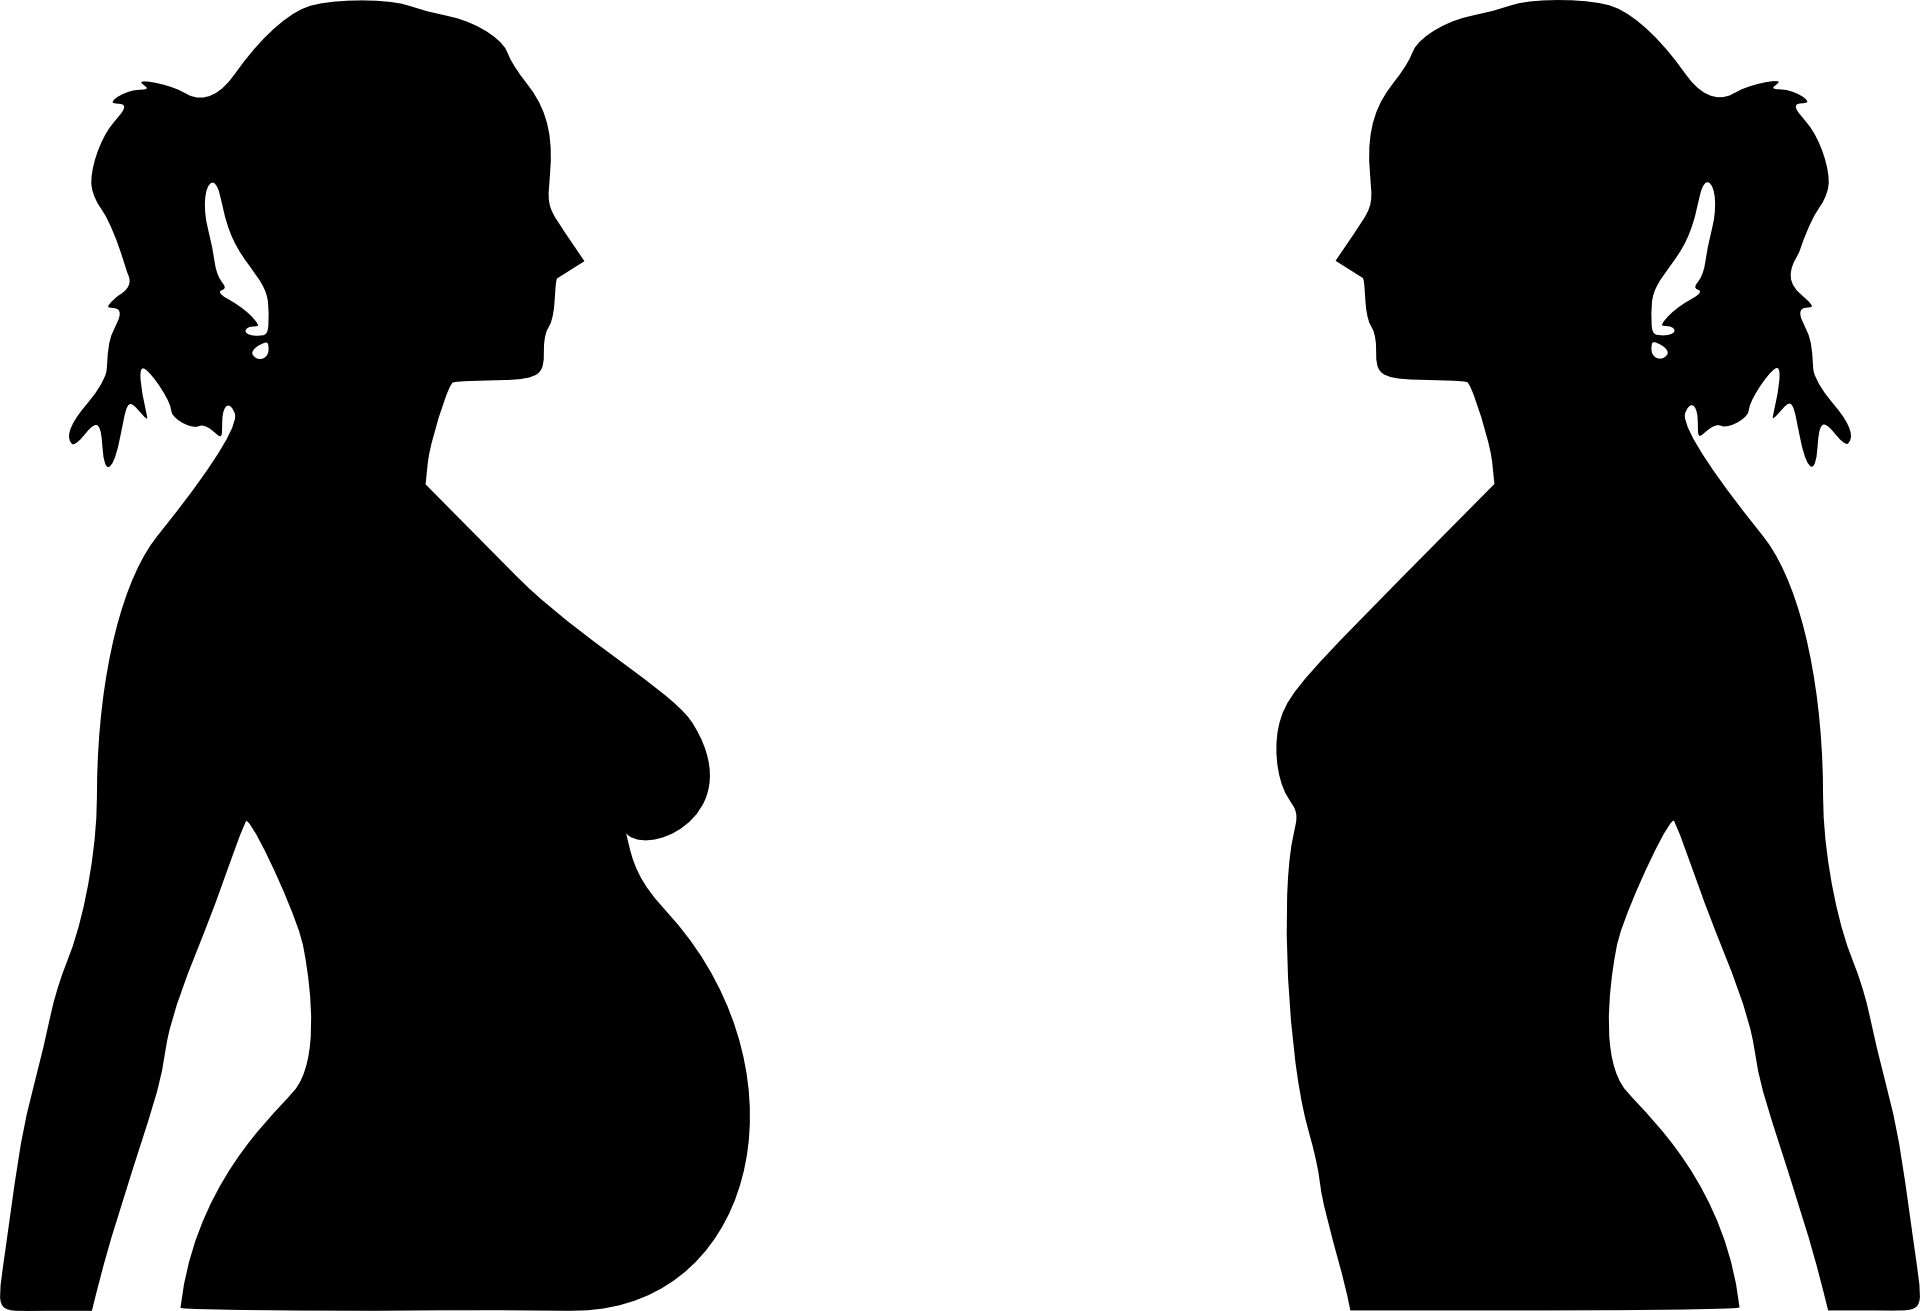 Pregnant Woman Silhouette Clip Art Free N21 free image.